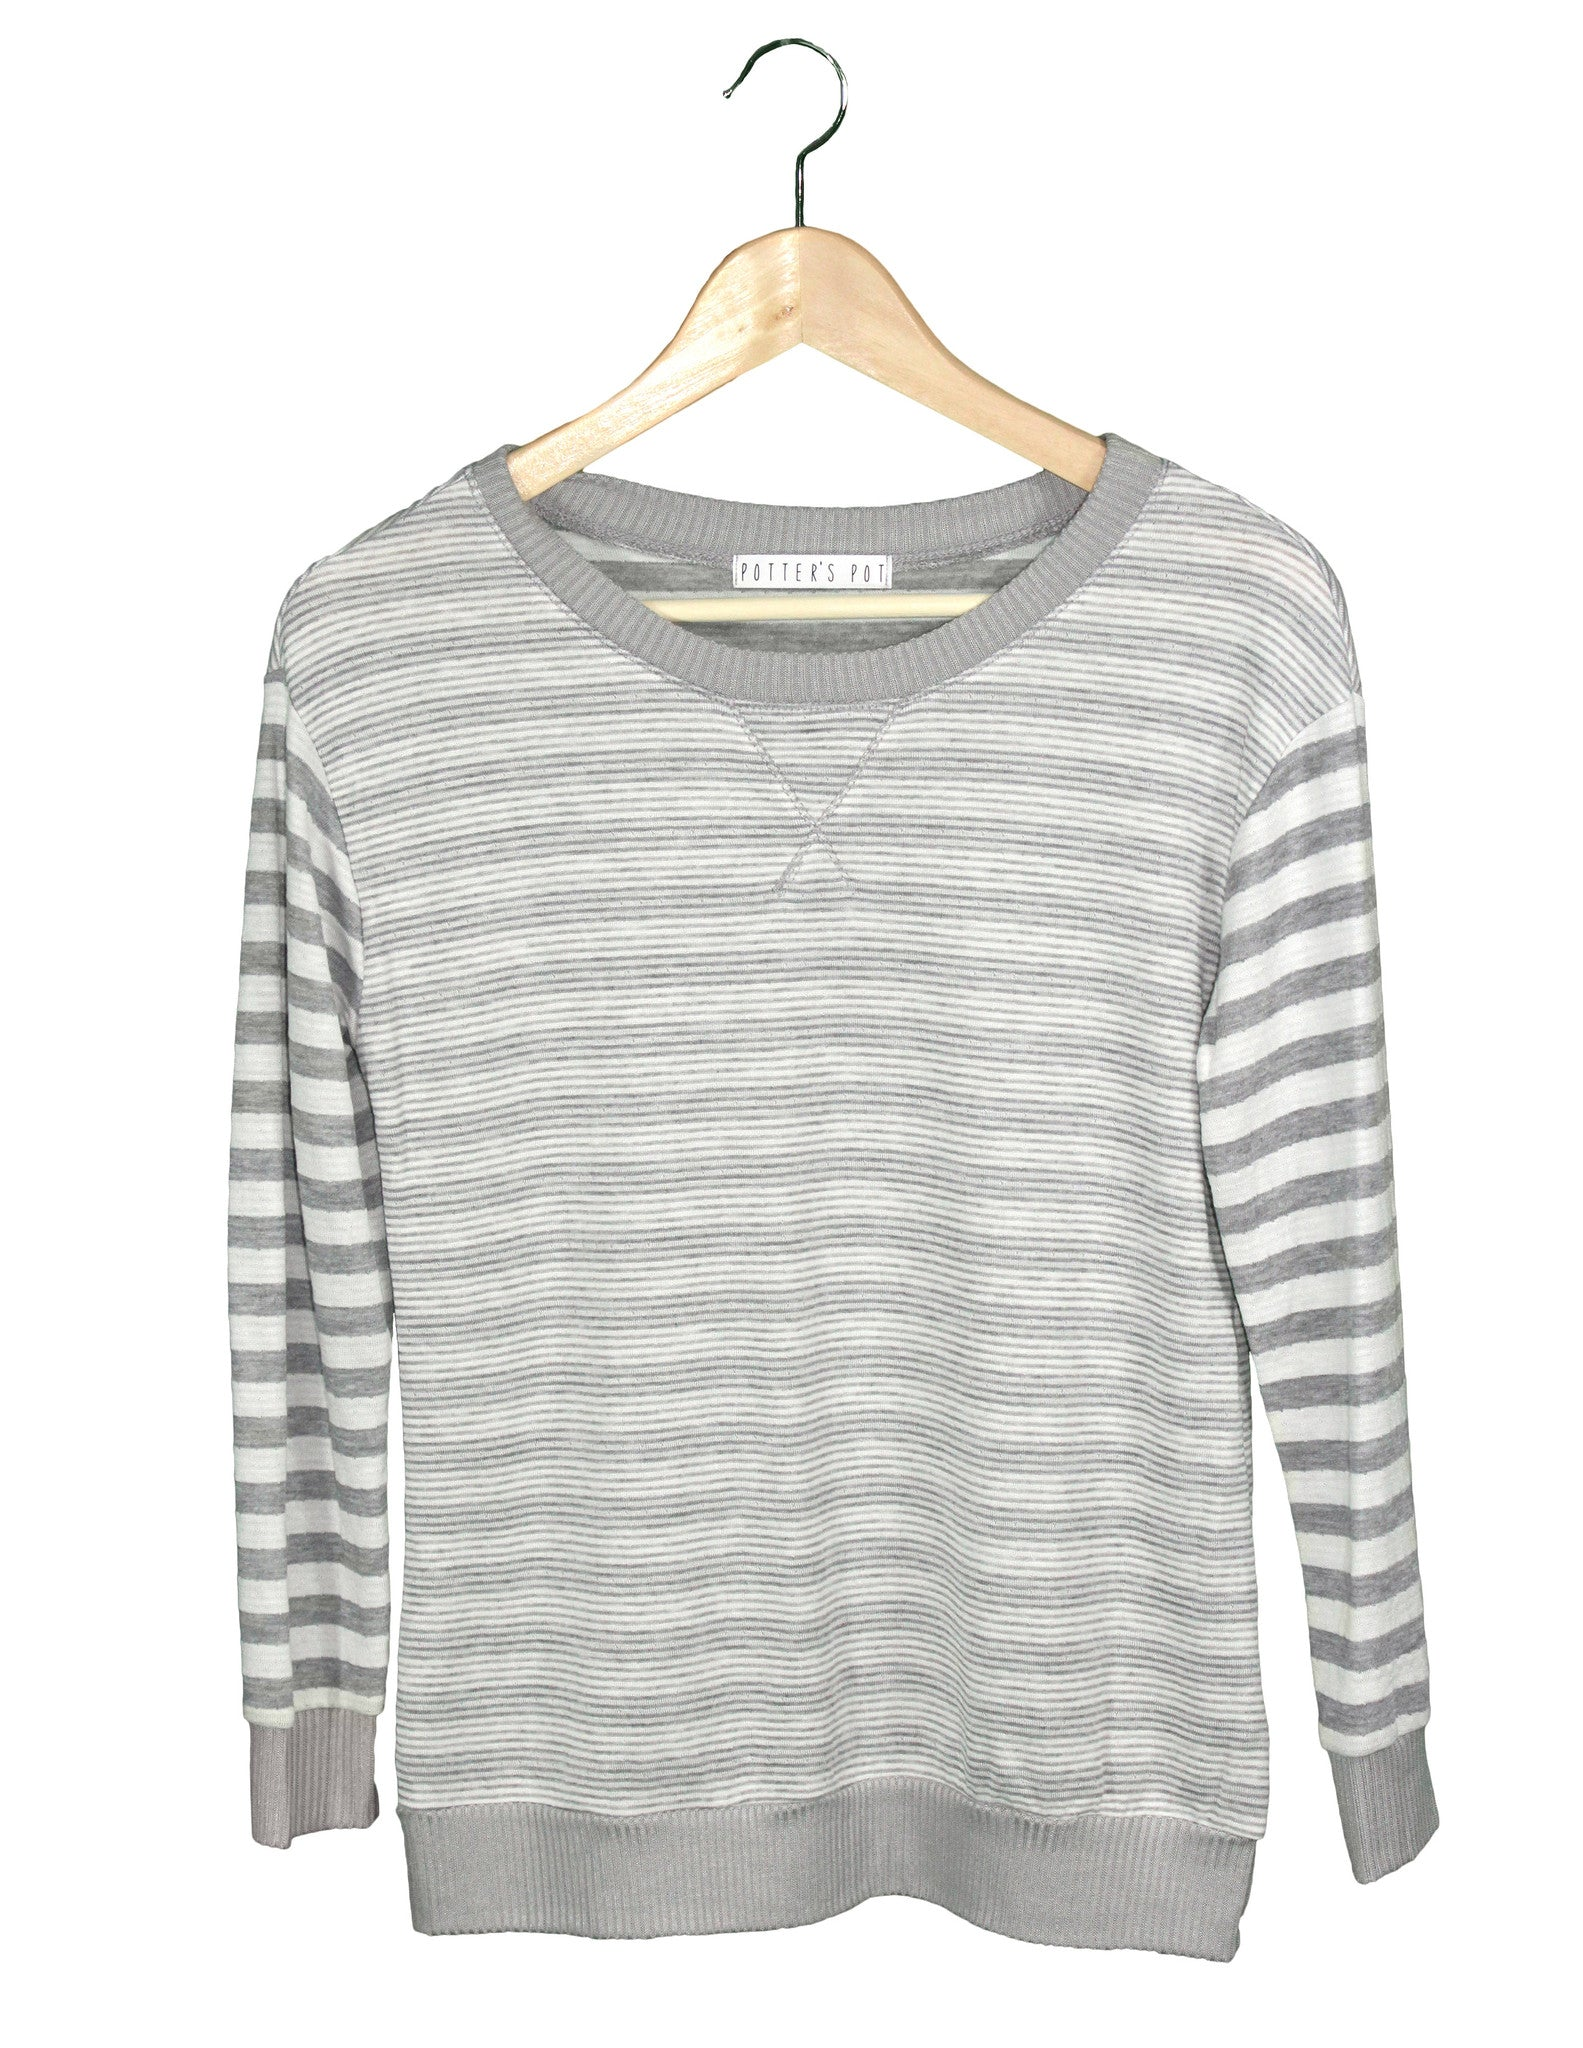 Grey and White Stripe Top / Ethical Fashion